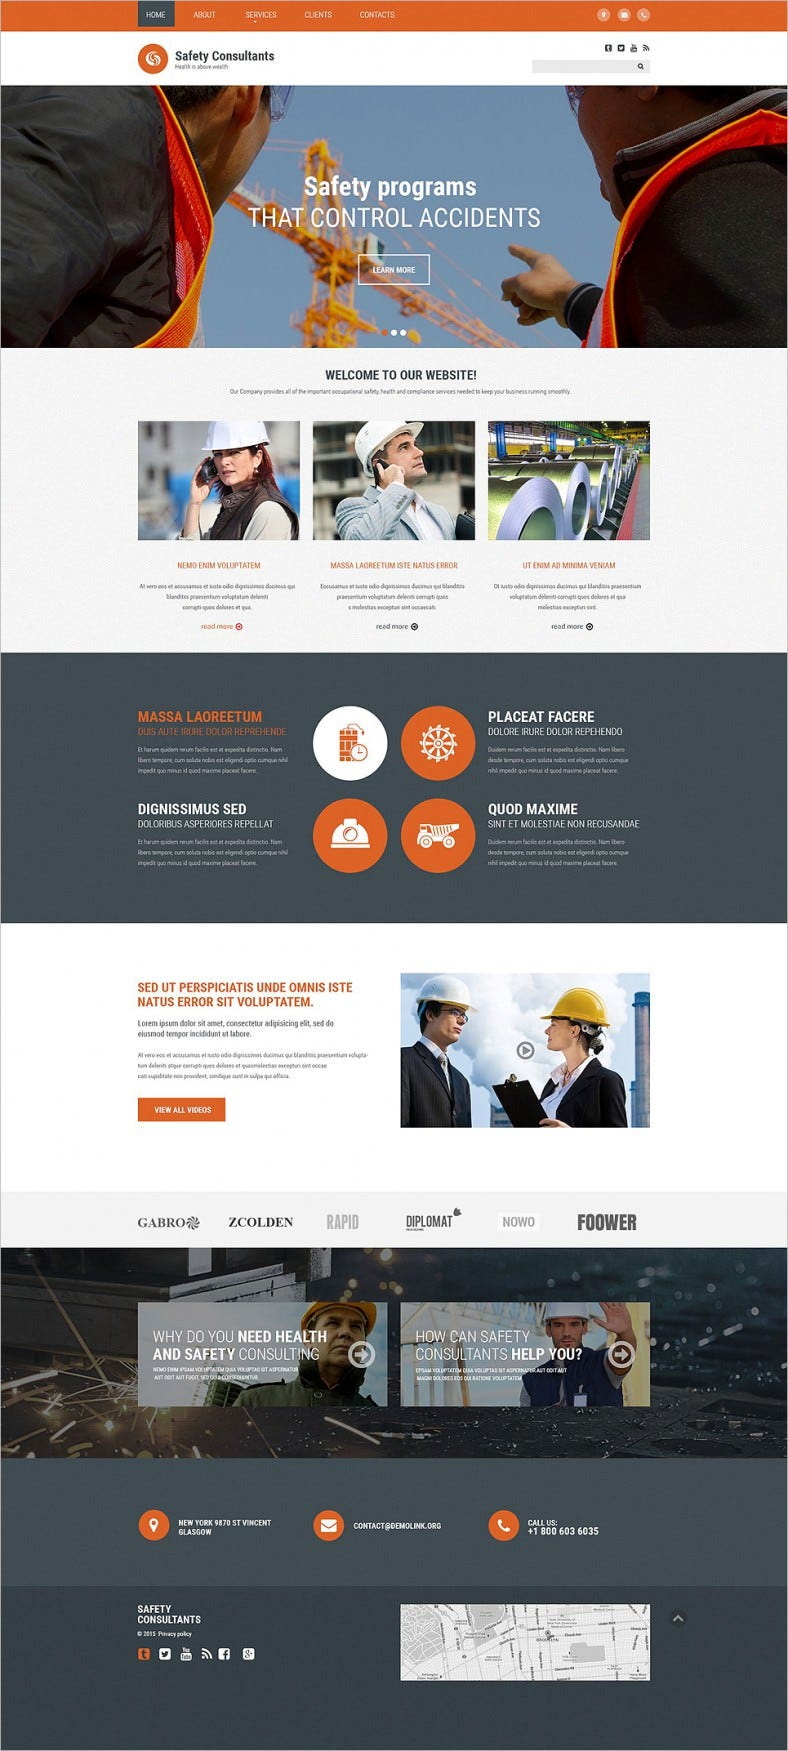 Parallax Effect Website Template for Safety Consultant